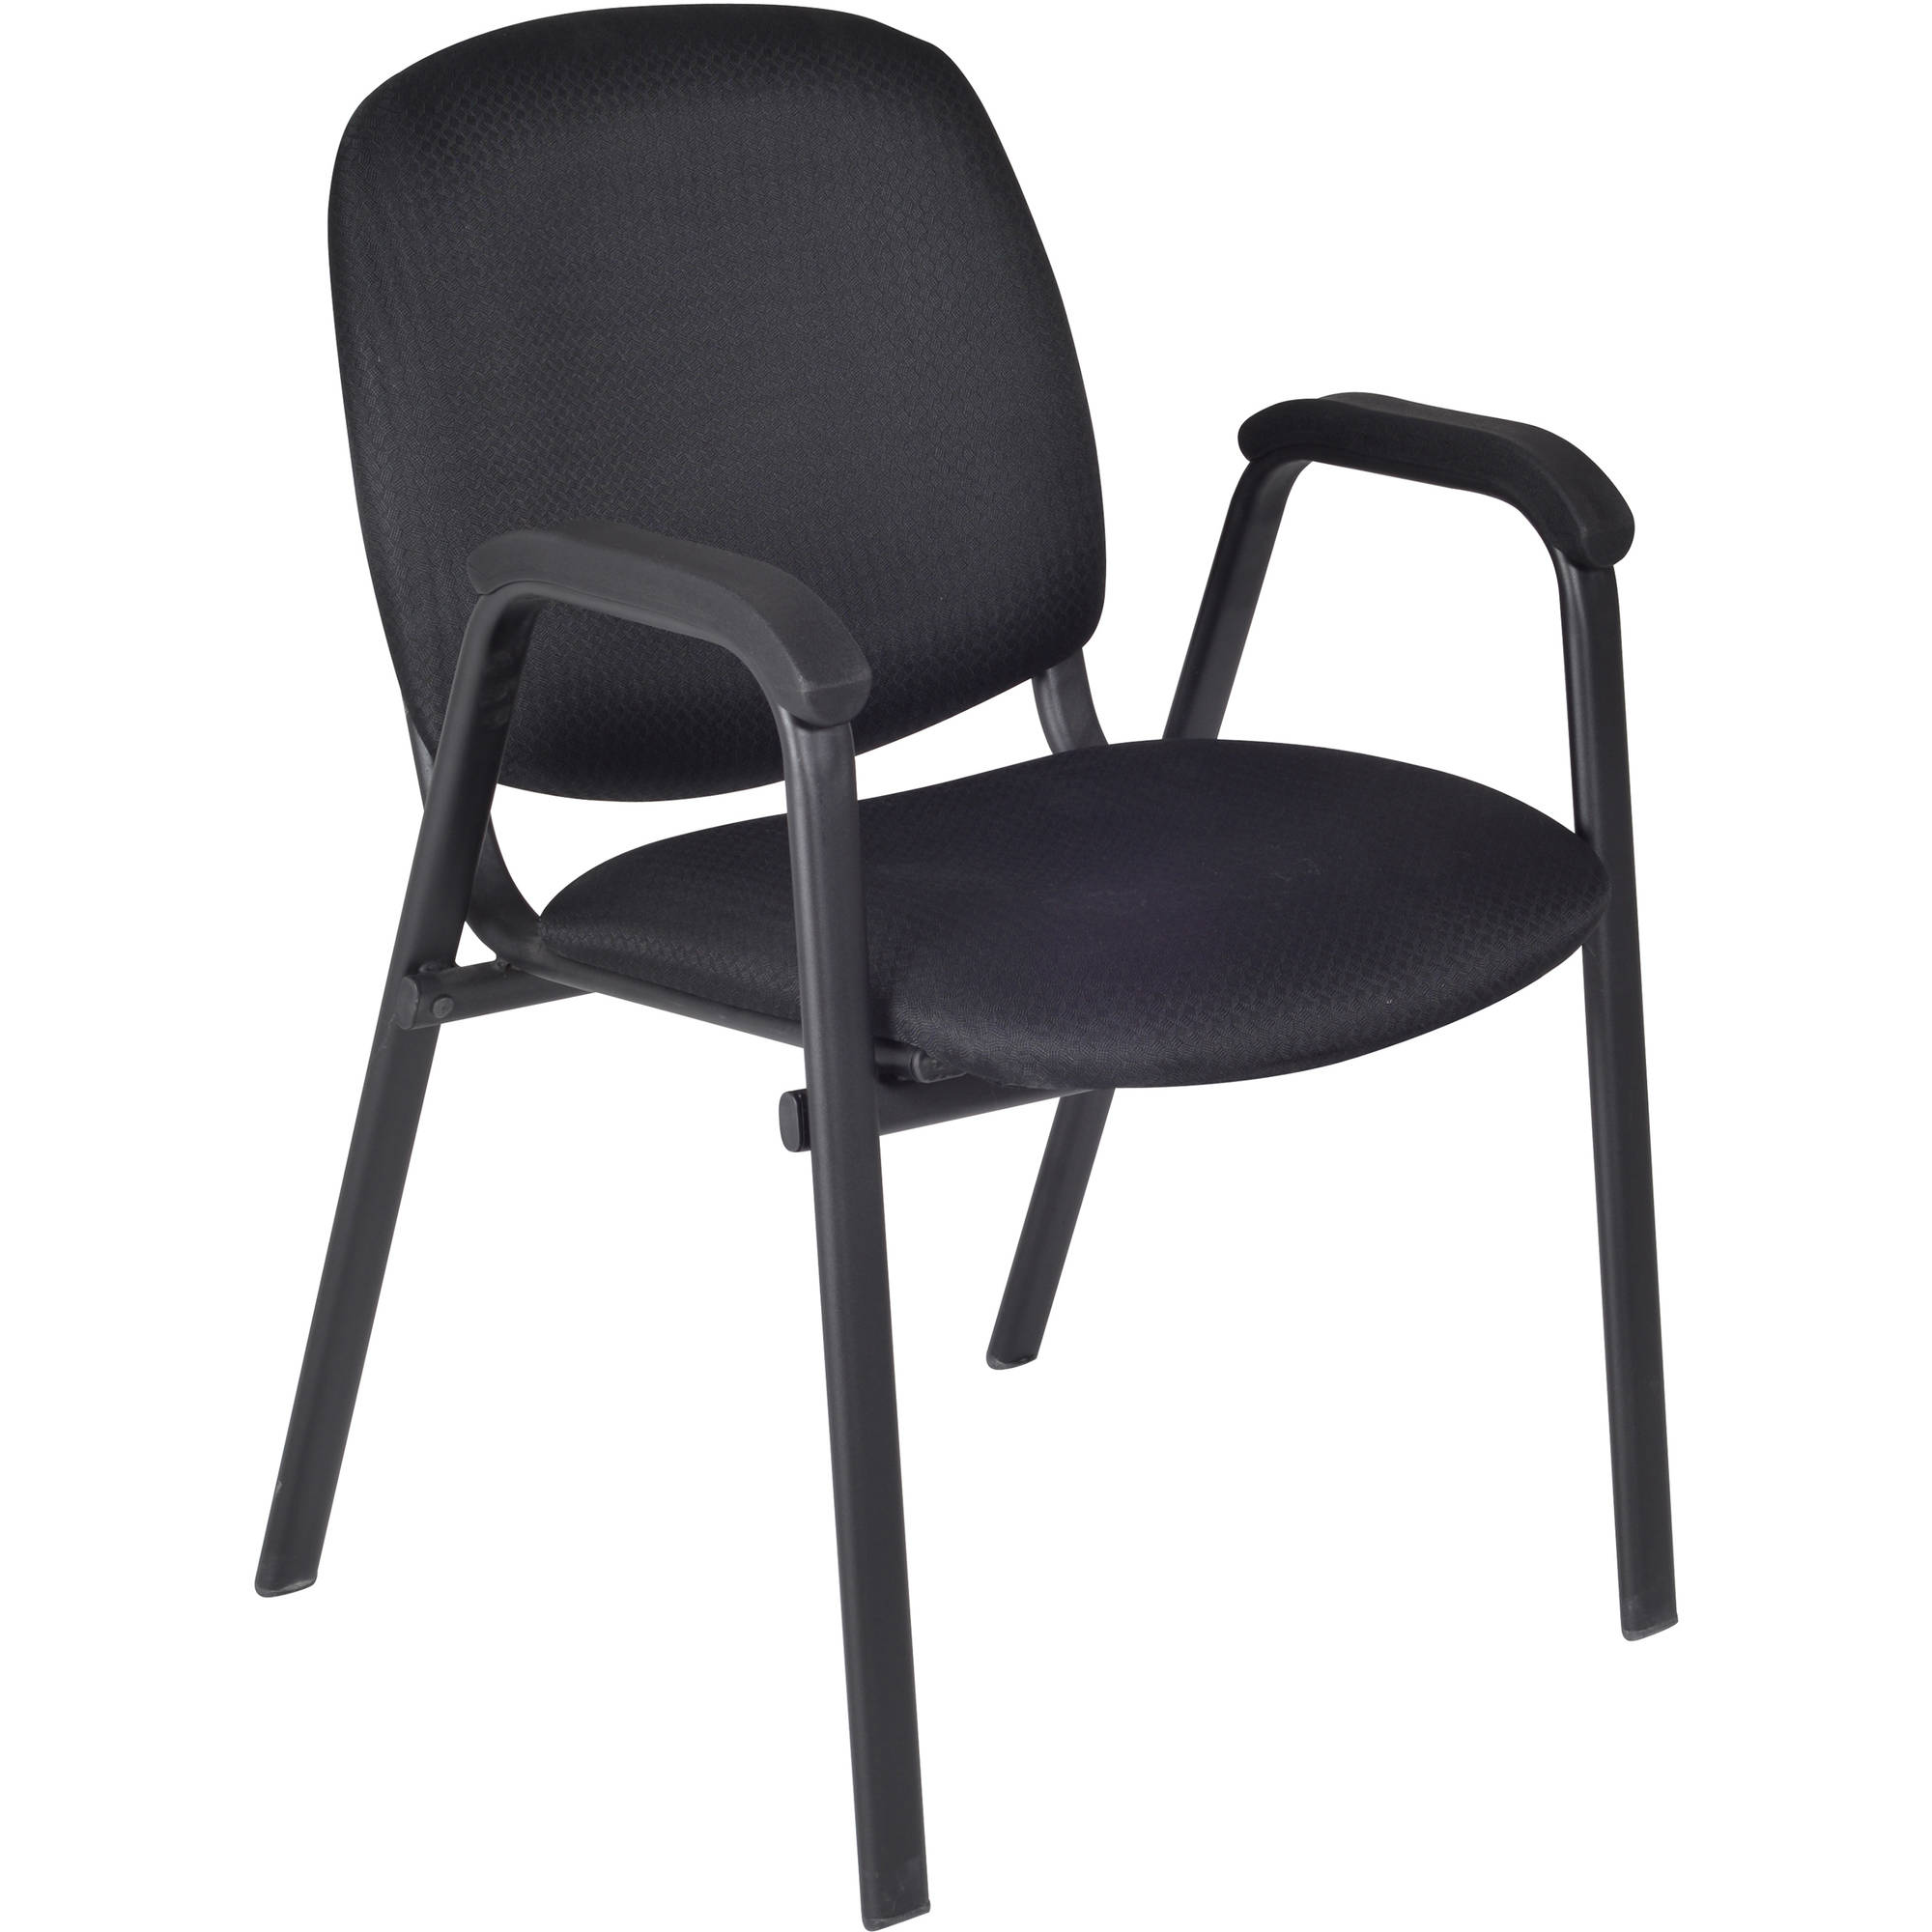 Regency Ace Stack Chairs, Black, 4pk